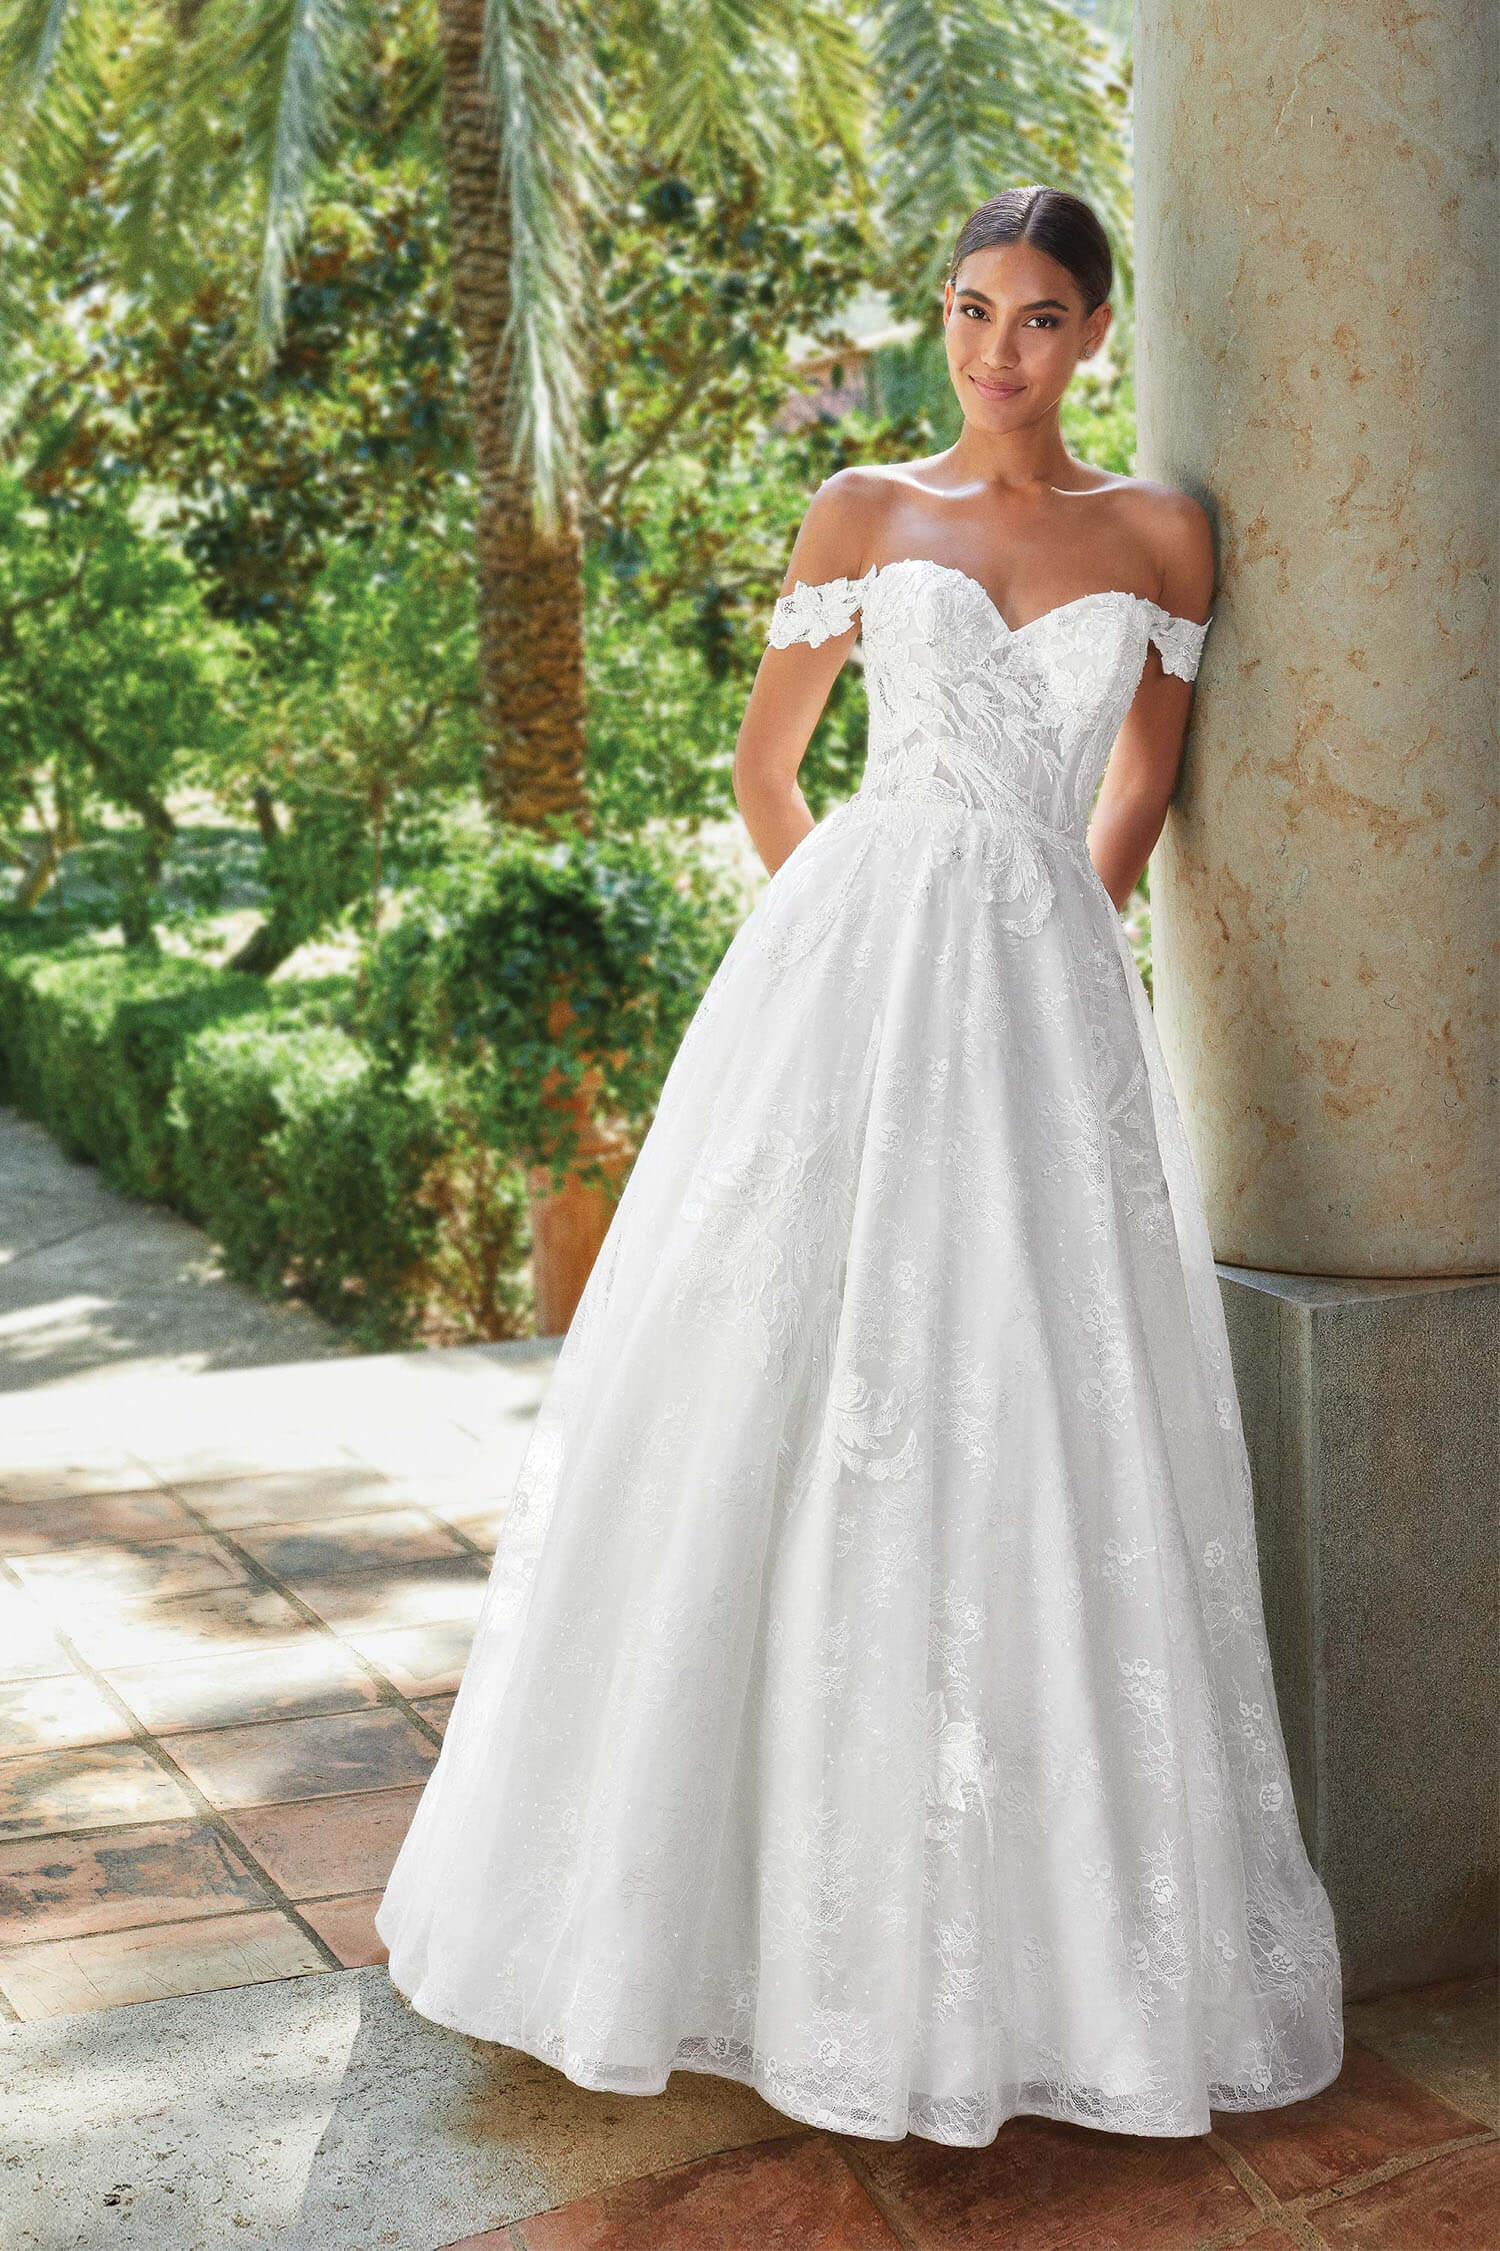 A bride wearing a princess style gown with sweetheart neckline and lace arm swags.